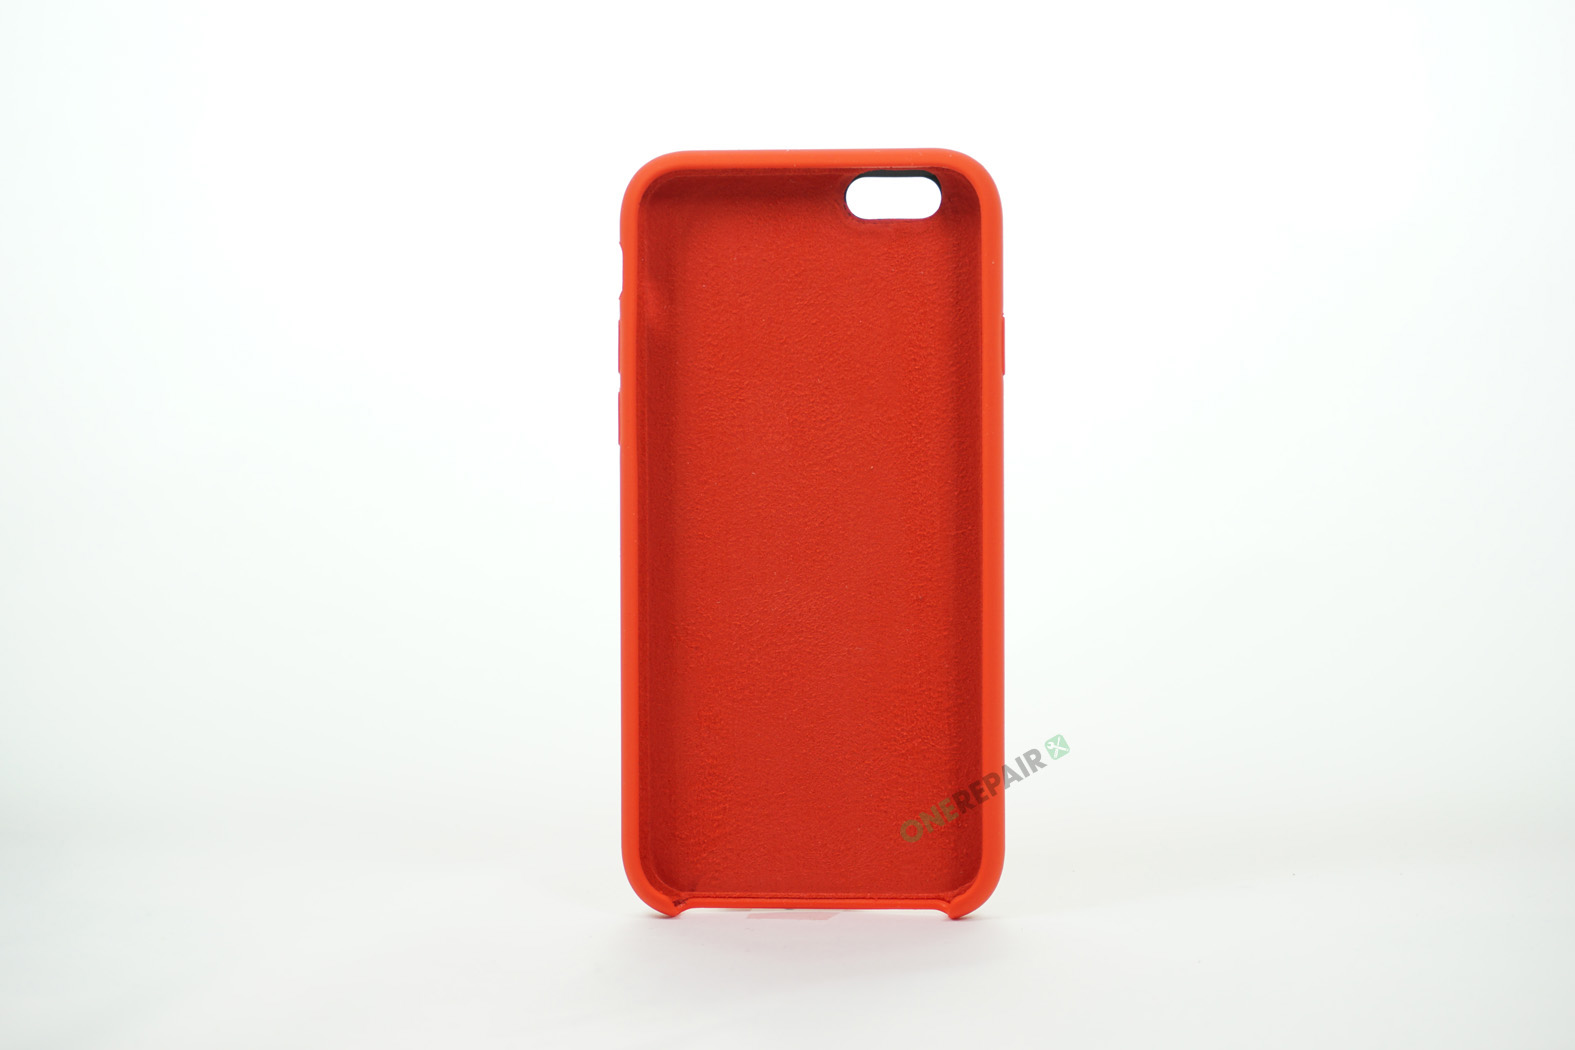 350549_iPhone_6_6S_Silikonecover_Cover_Roed_OneRepair_00003